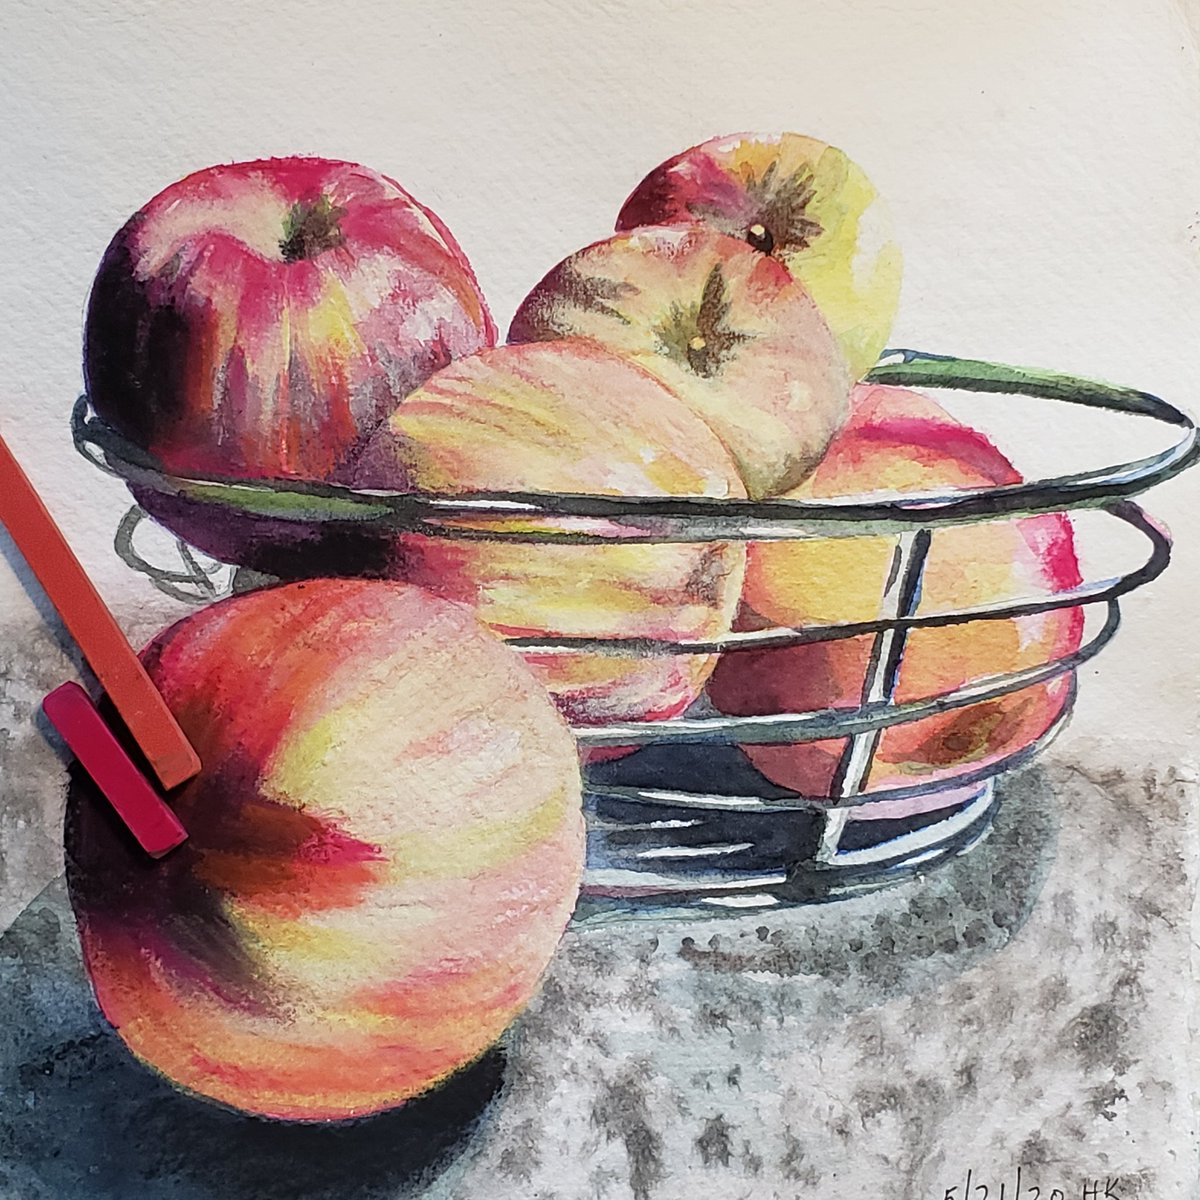 Chase's Honeycrisp Apples 5.21.20 Still life Watercolor & Pastel #watercolor  #watercolorpainting pic.twitter.com/pBtakas8qM